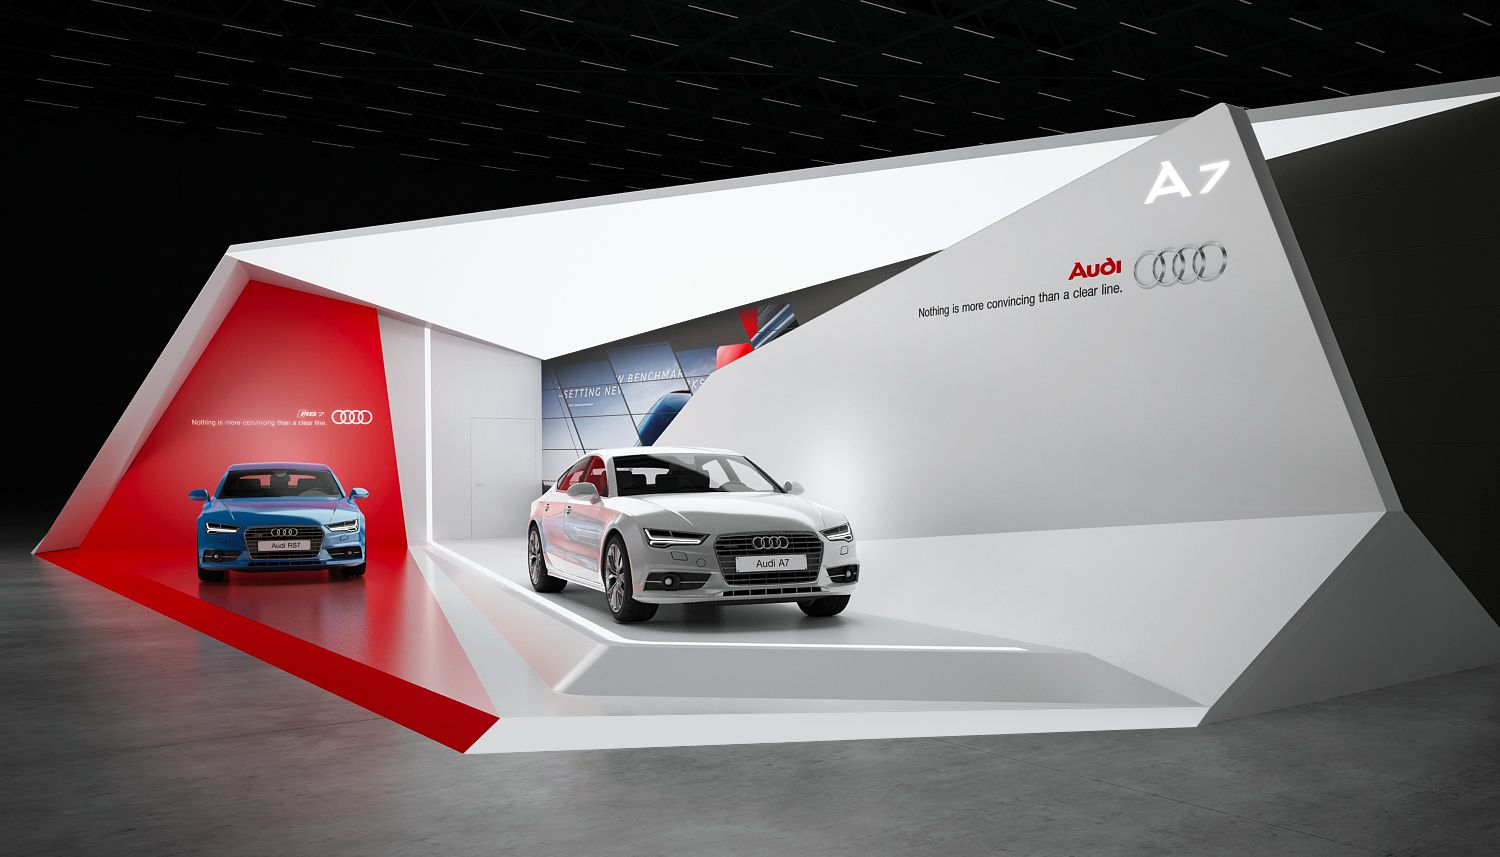 Audi A7 Exhibition Stand Design